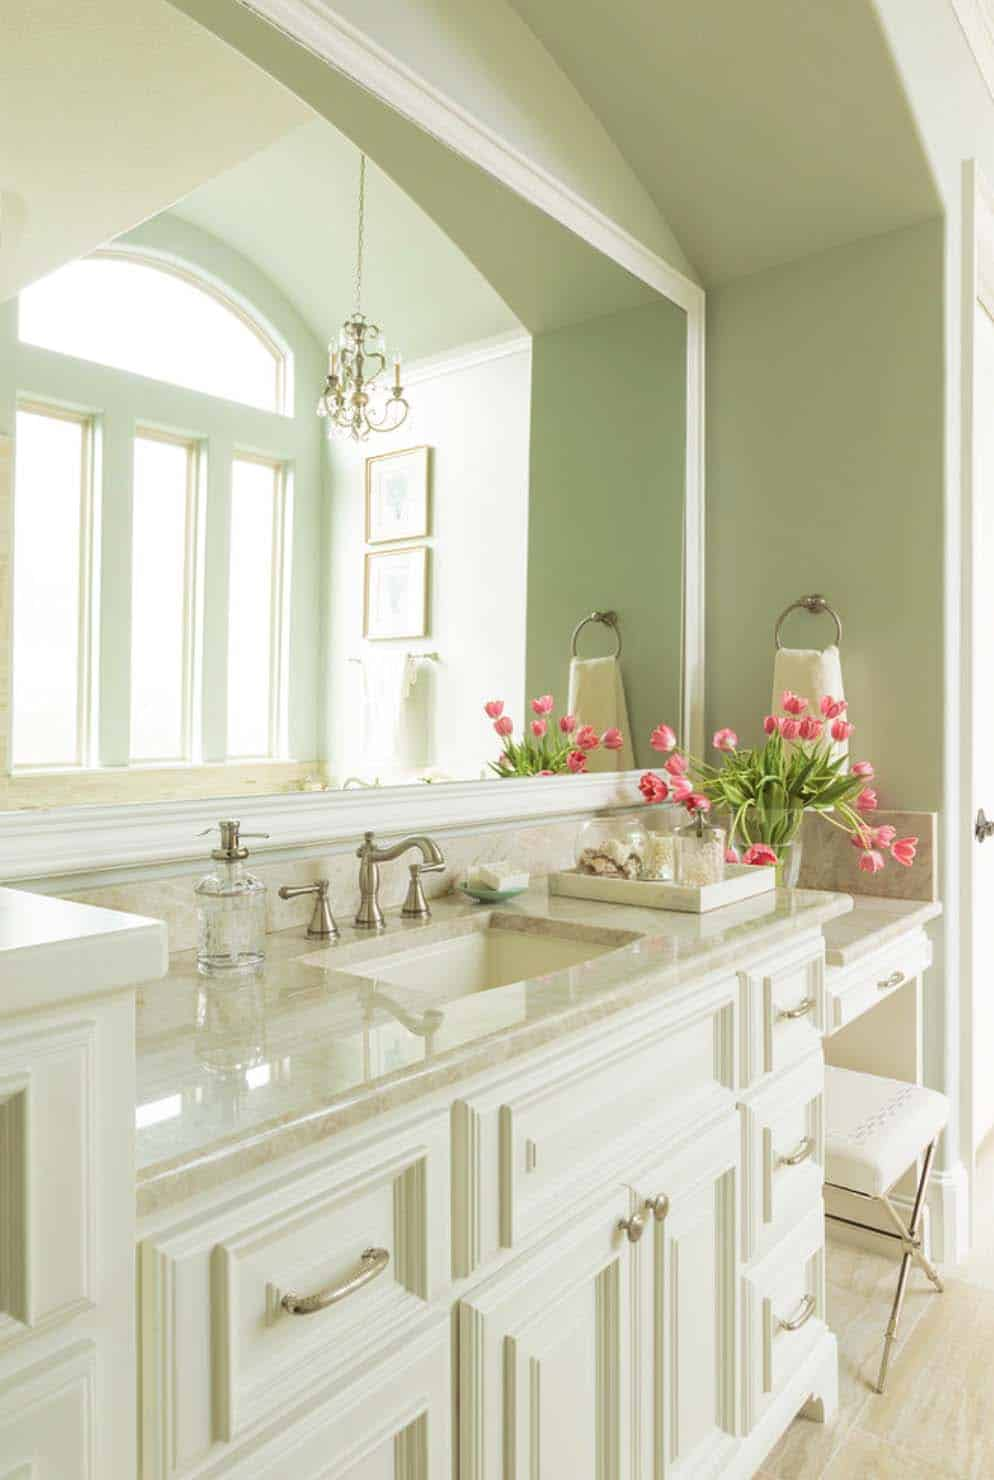 53 Most fabulous traditional style bathroom designs ever on Bathroom Remodel Design Ideas  id=80579